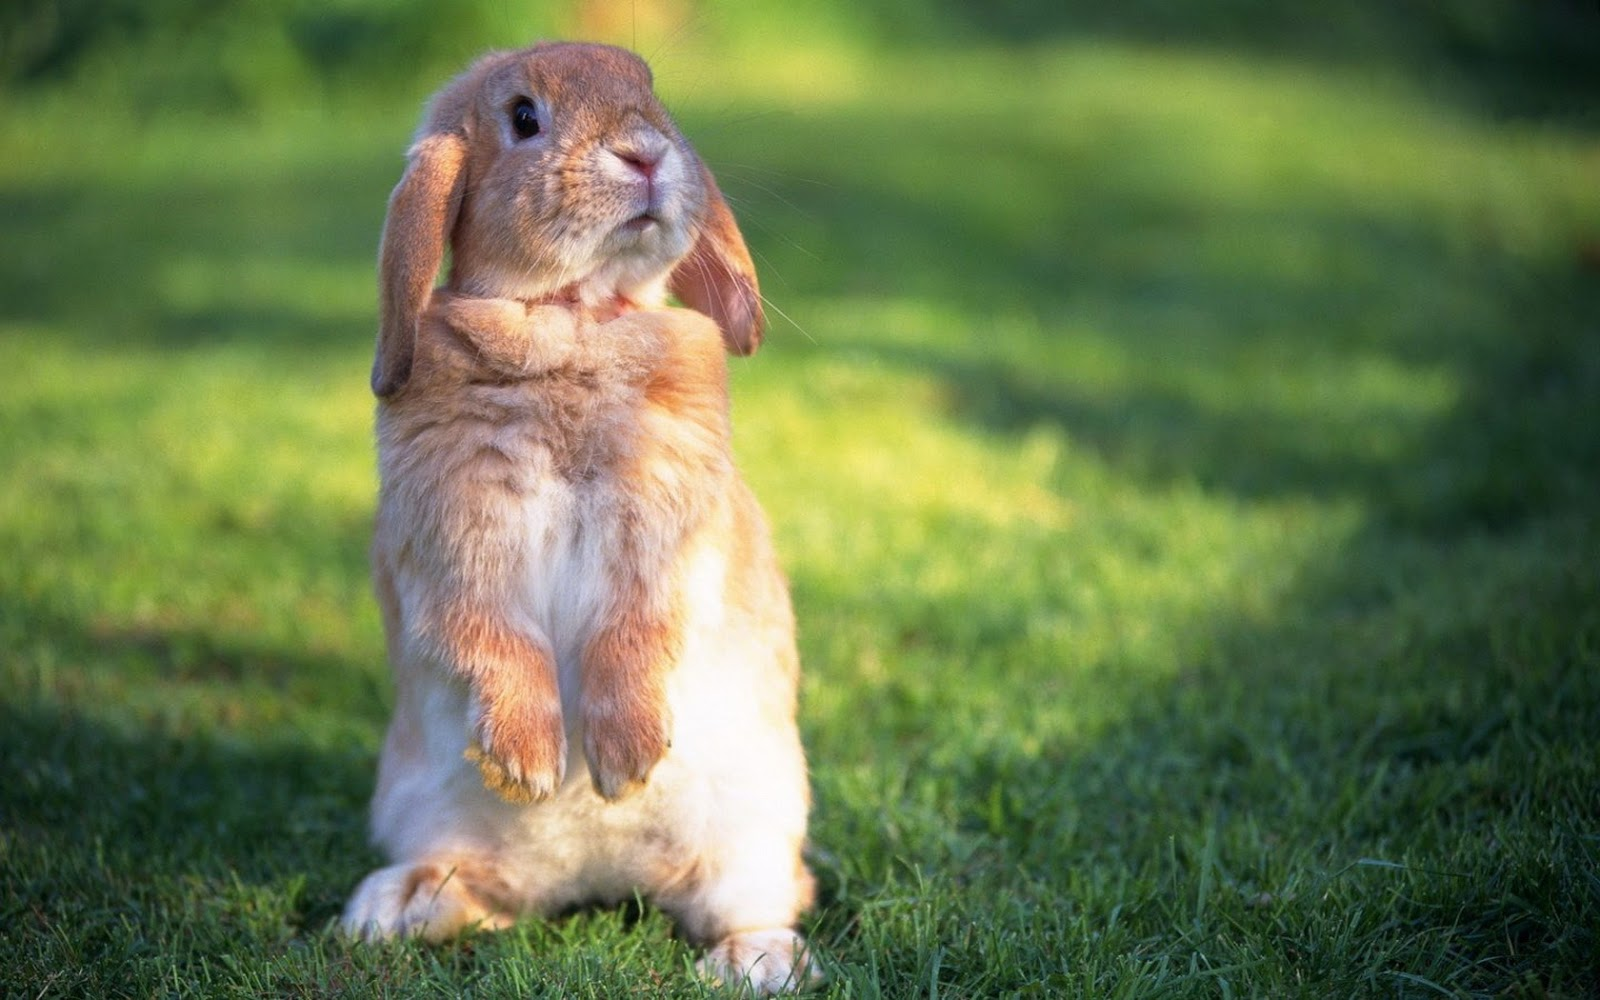 All Wallpapers Cute Rabbit hd Wallpapers 2013 1600x1000